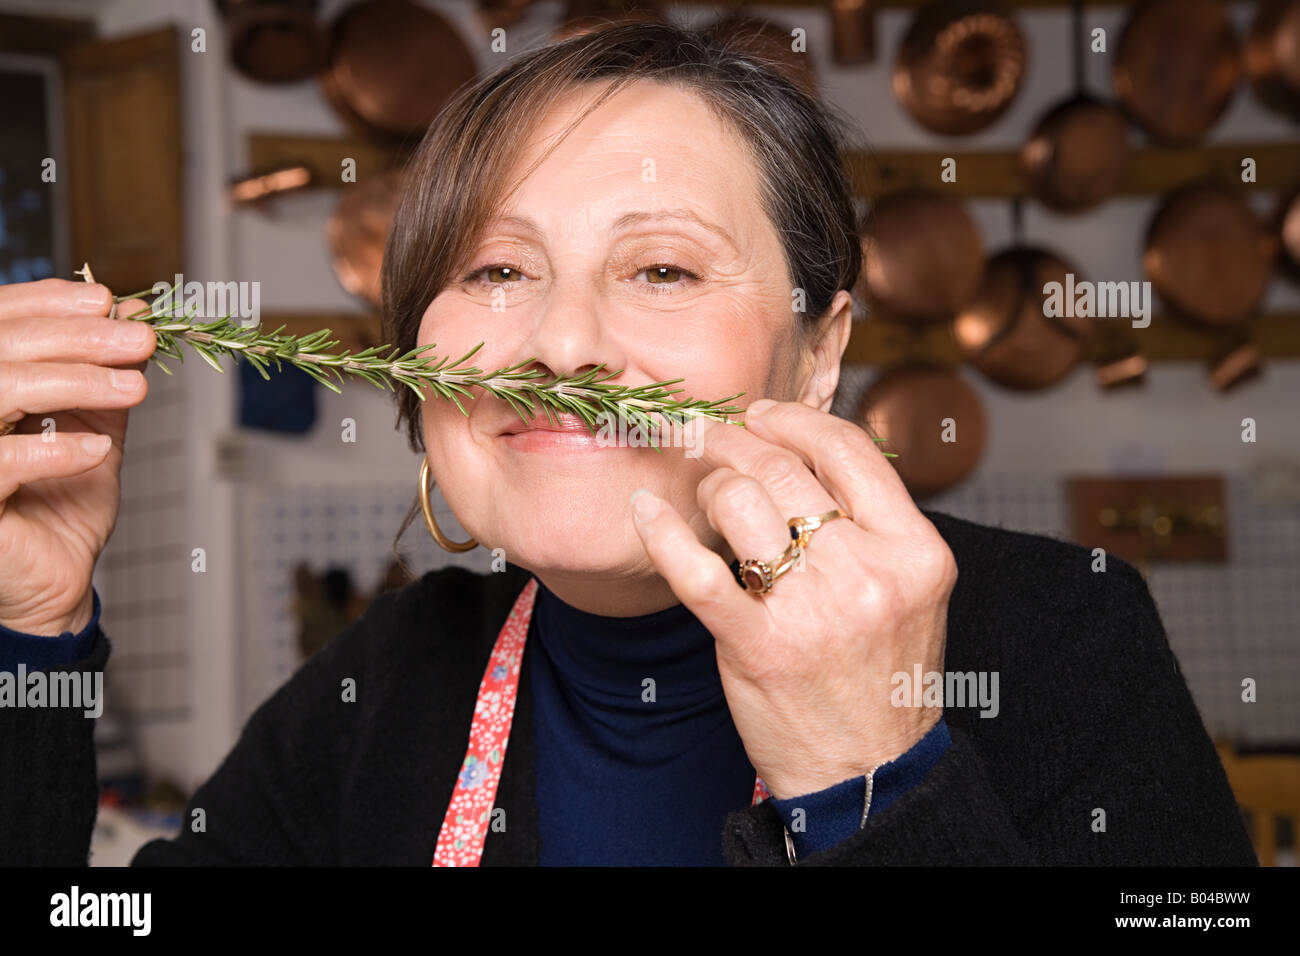 Woman smelling a sprig of rosemary - Stock Image